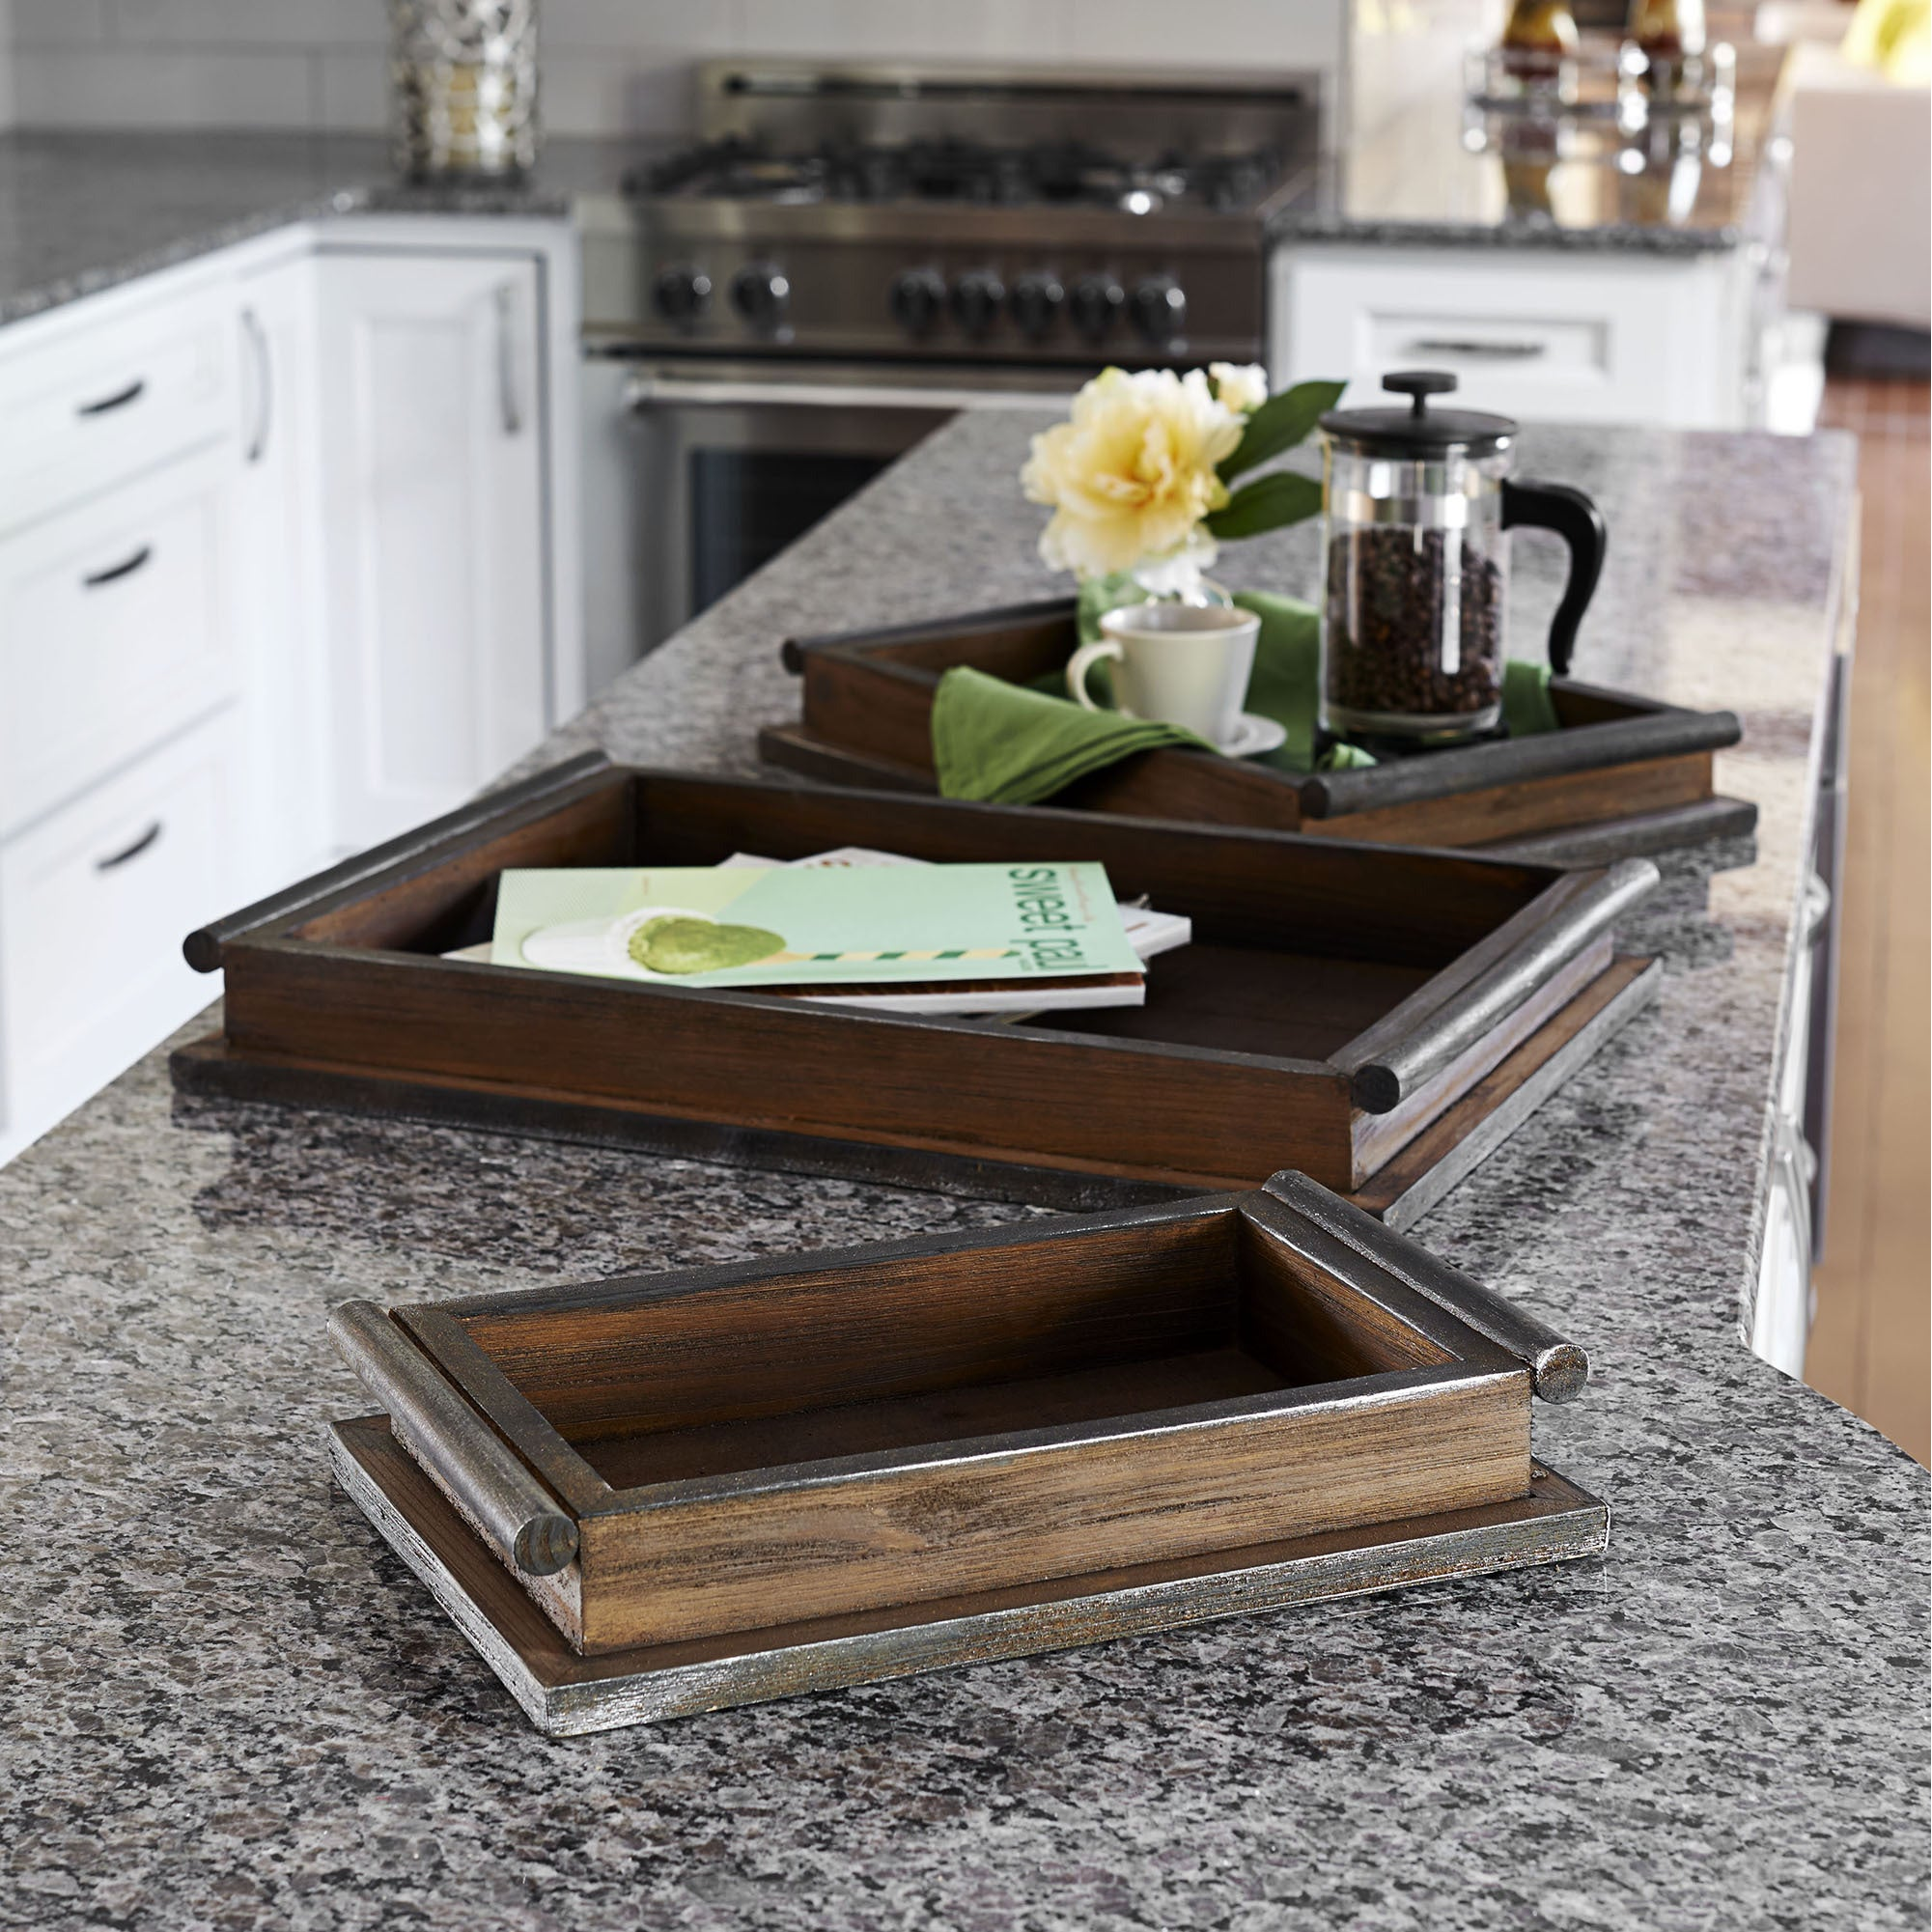 Household Essentials Brown Wood Rustc Tray Set (3 Pieces) (Rustic Wooden Tray, 3 pc Set)